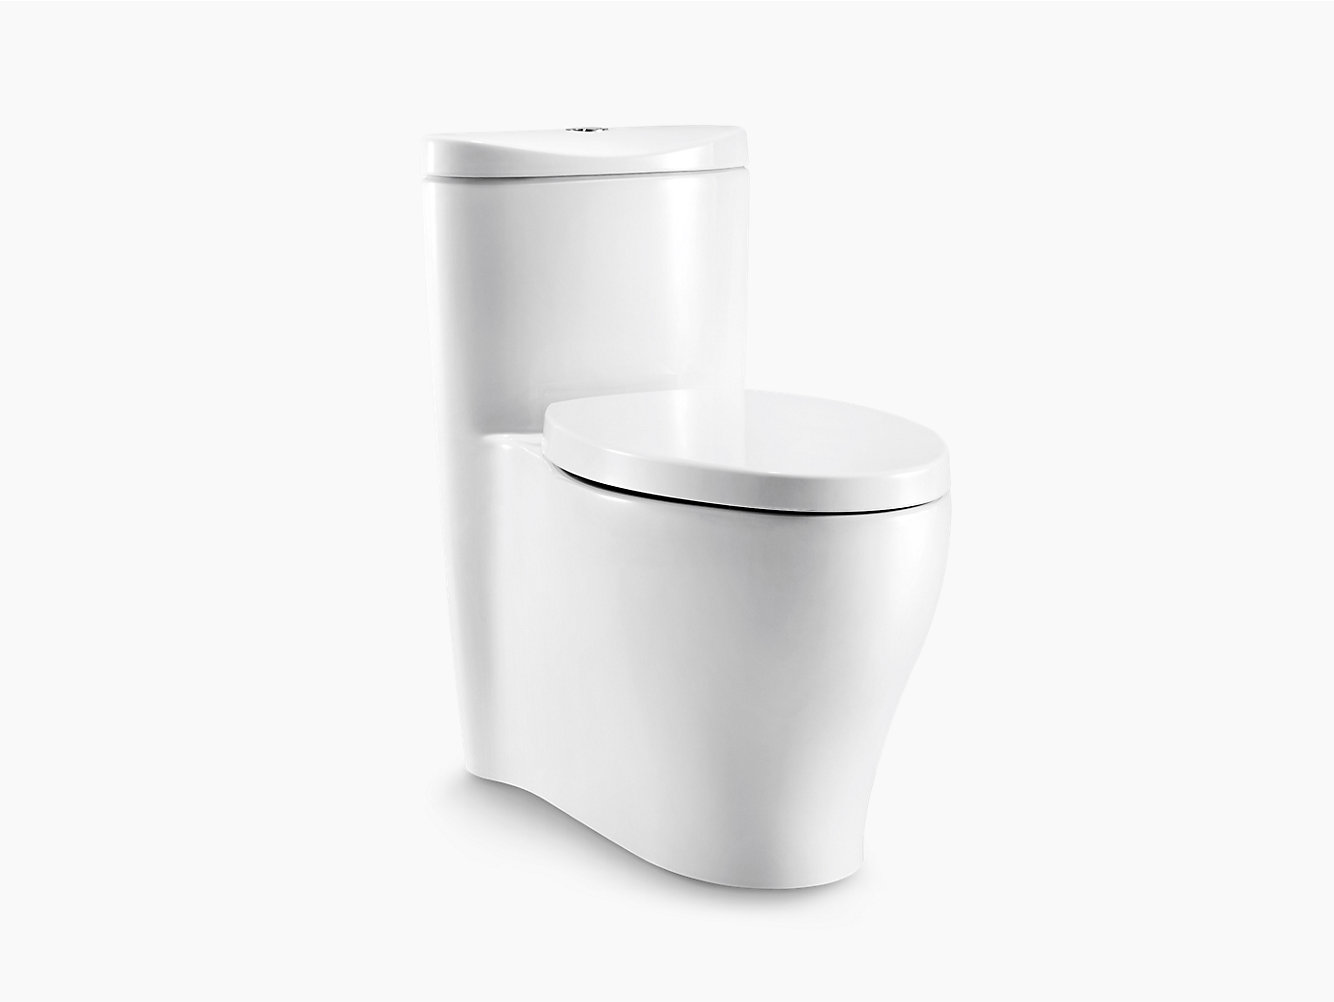 Aerodyne Skirted One Piece Dual Flush 3 4 8l Toilet With Cl 5 Flushing Technology 3869t S Kohler